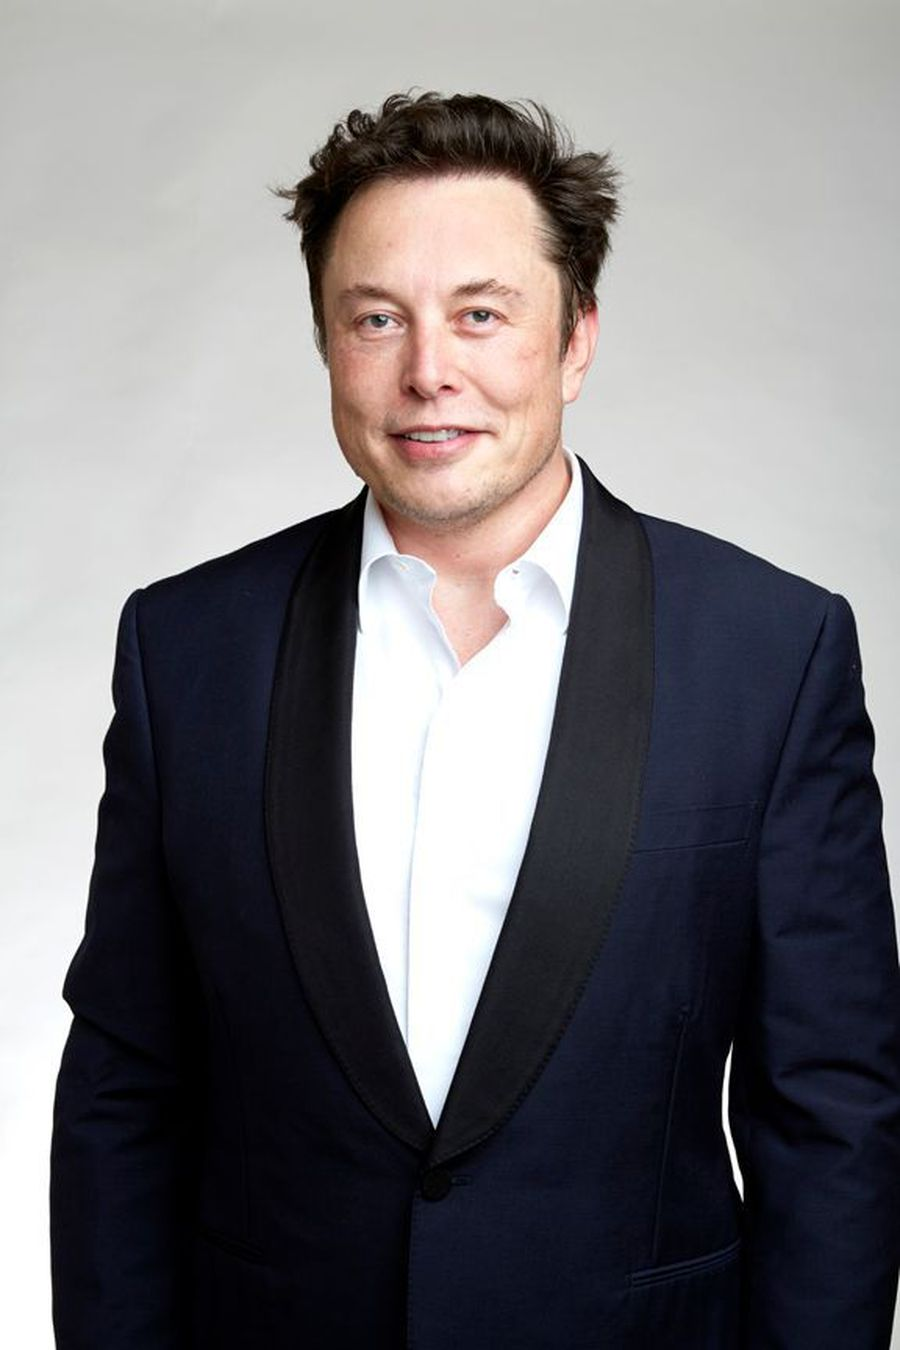 Top 5 Most Successful Elon Musk Innovations